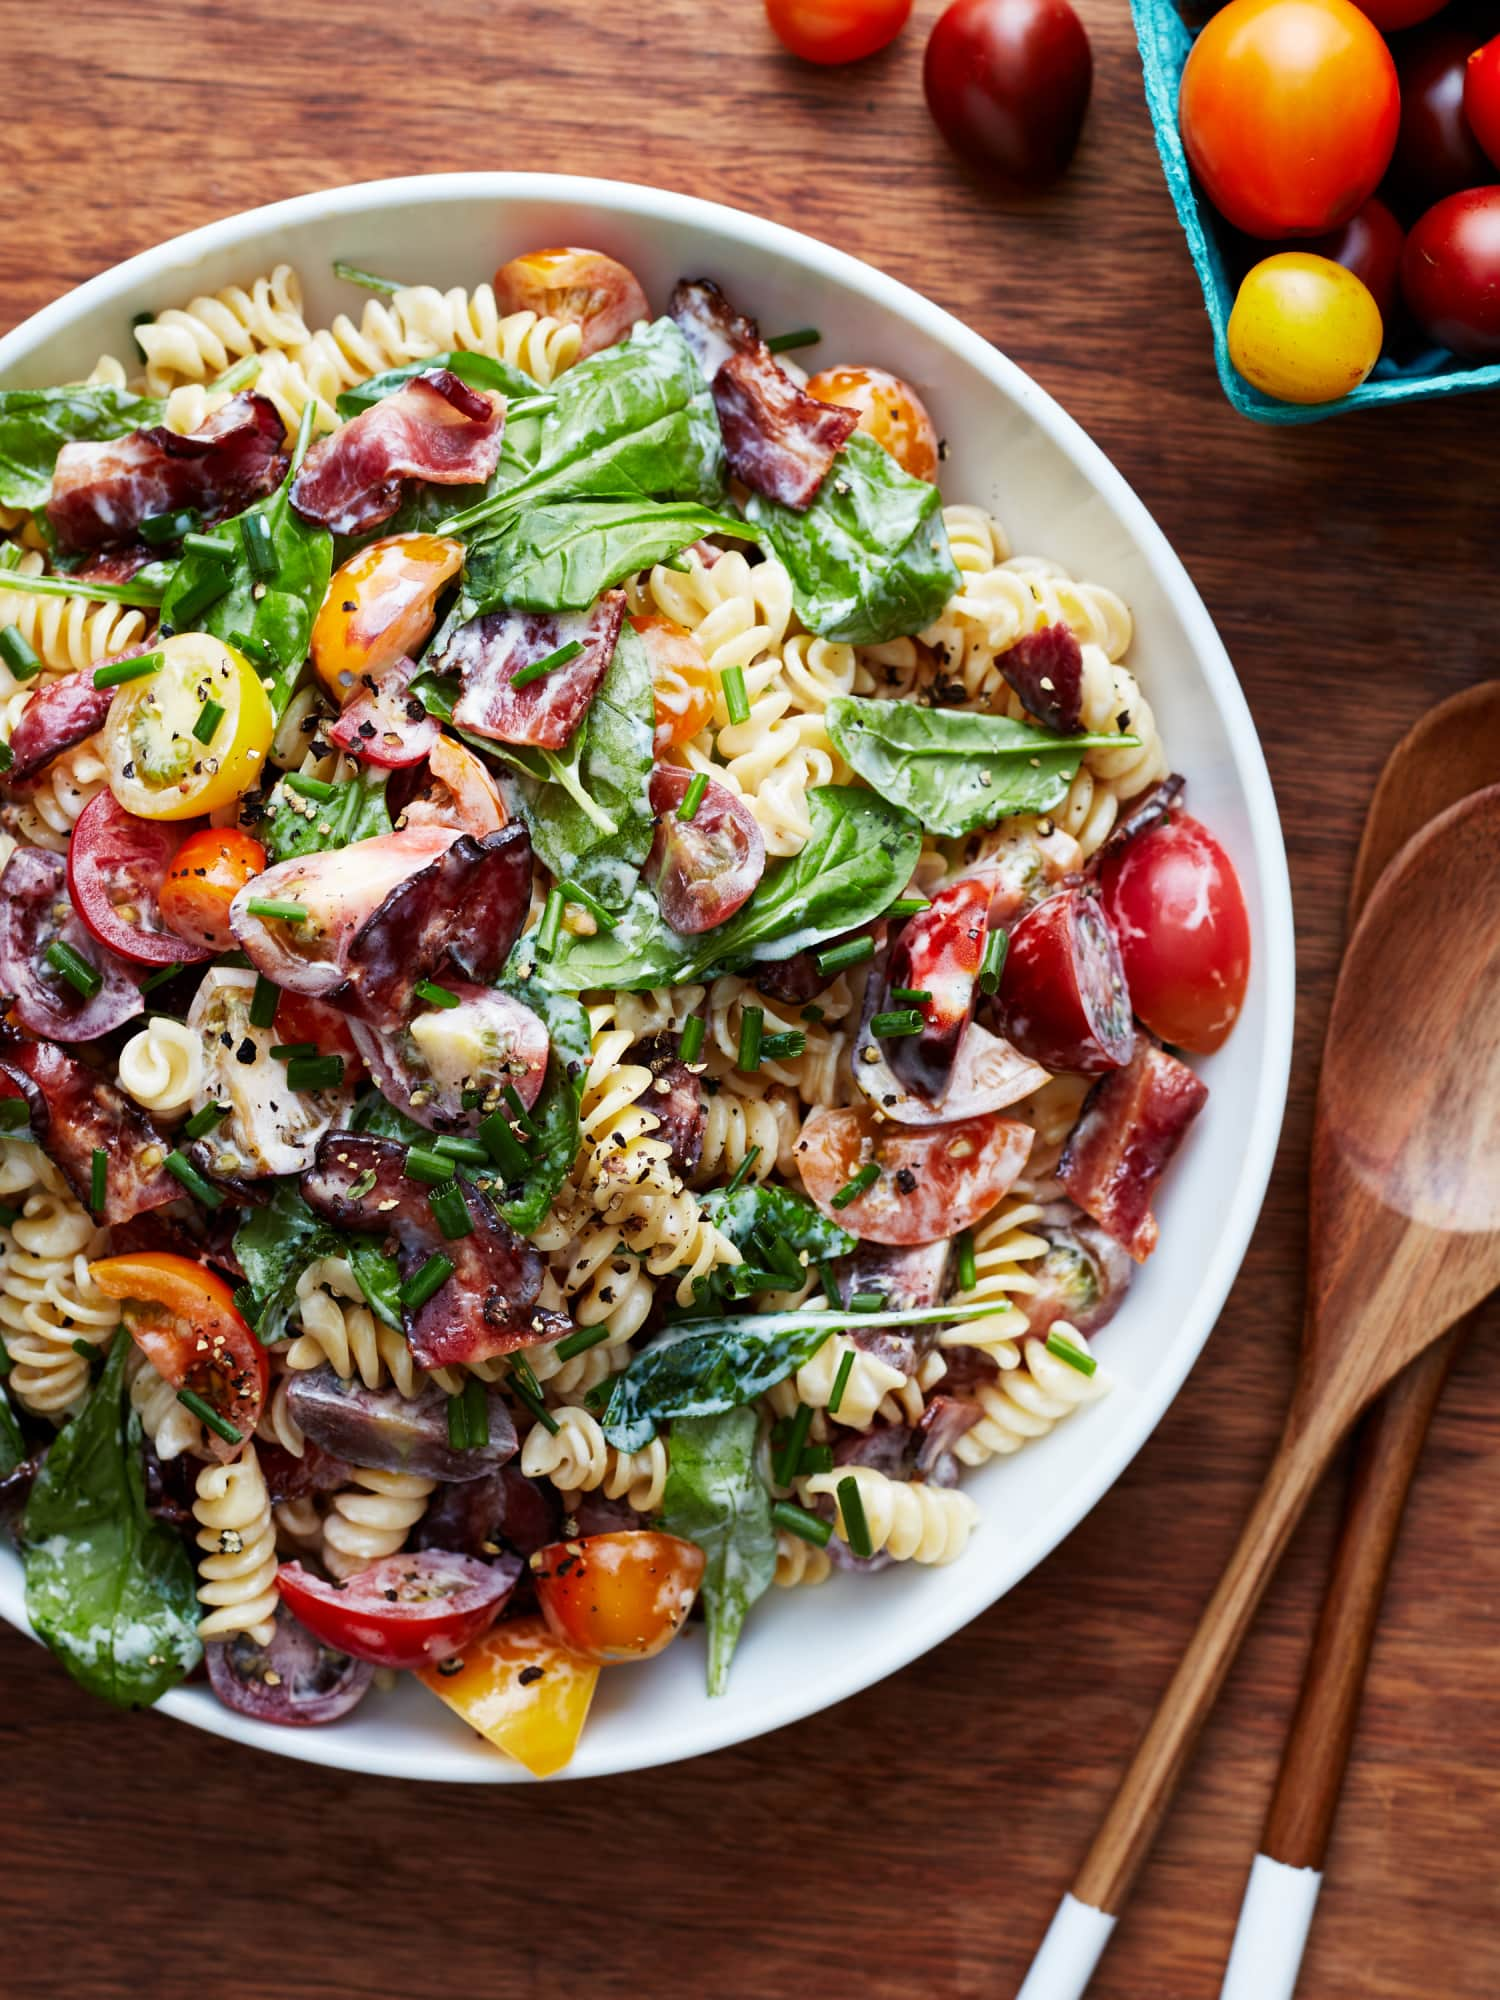 This Is the Top Pasta Salad Recipe, According to Pinterest